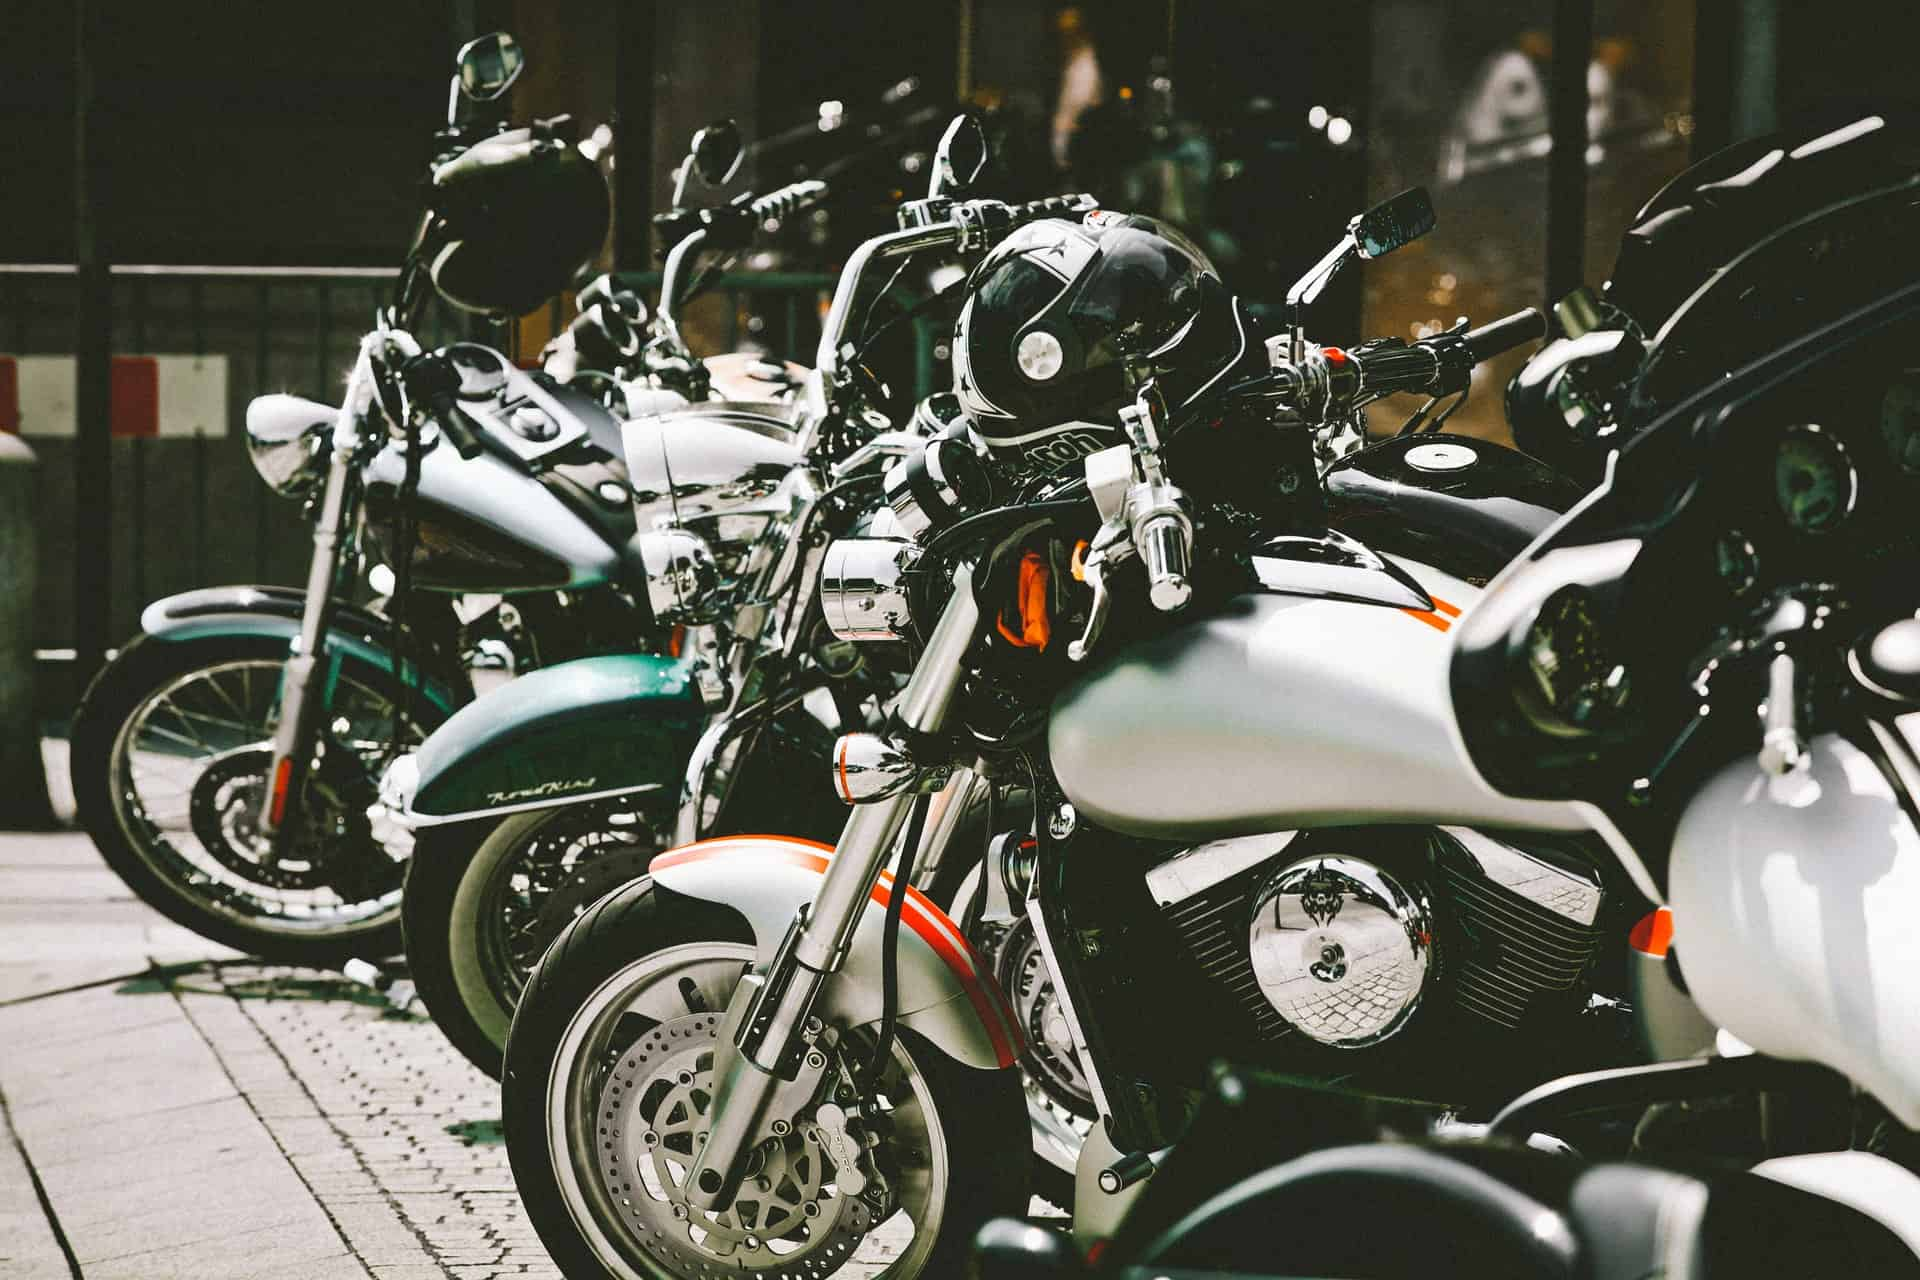 parked motorcycles helmets